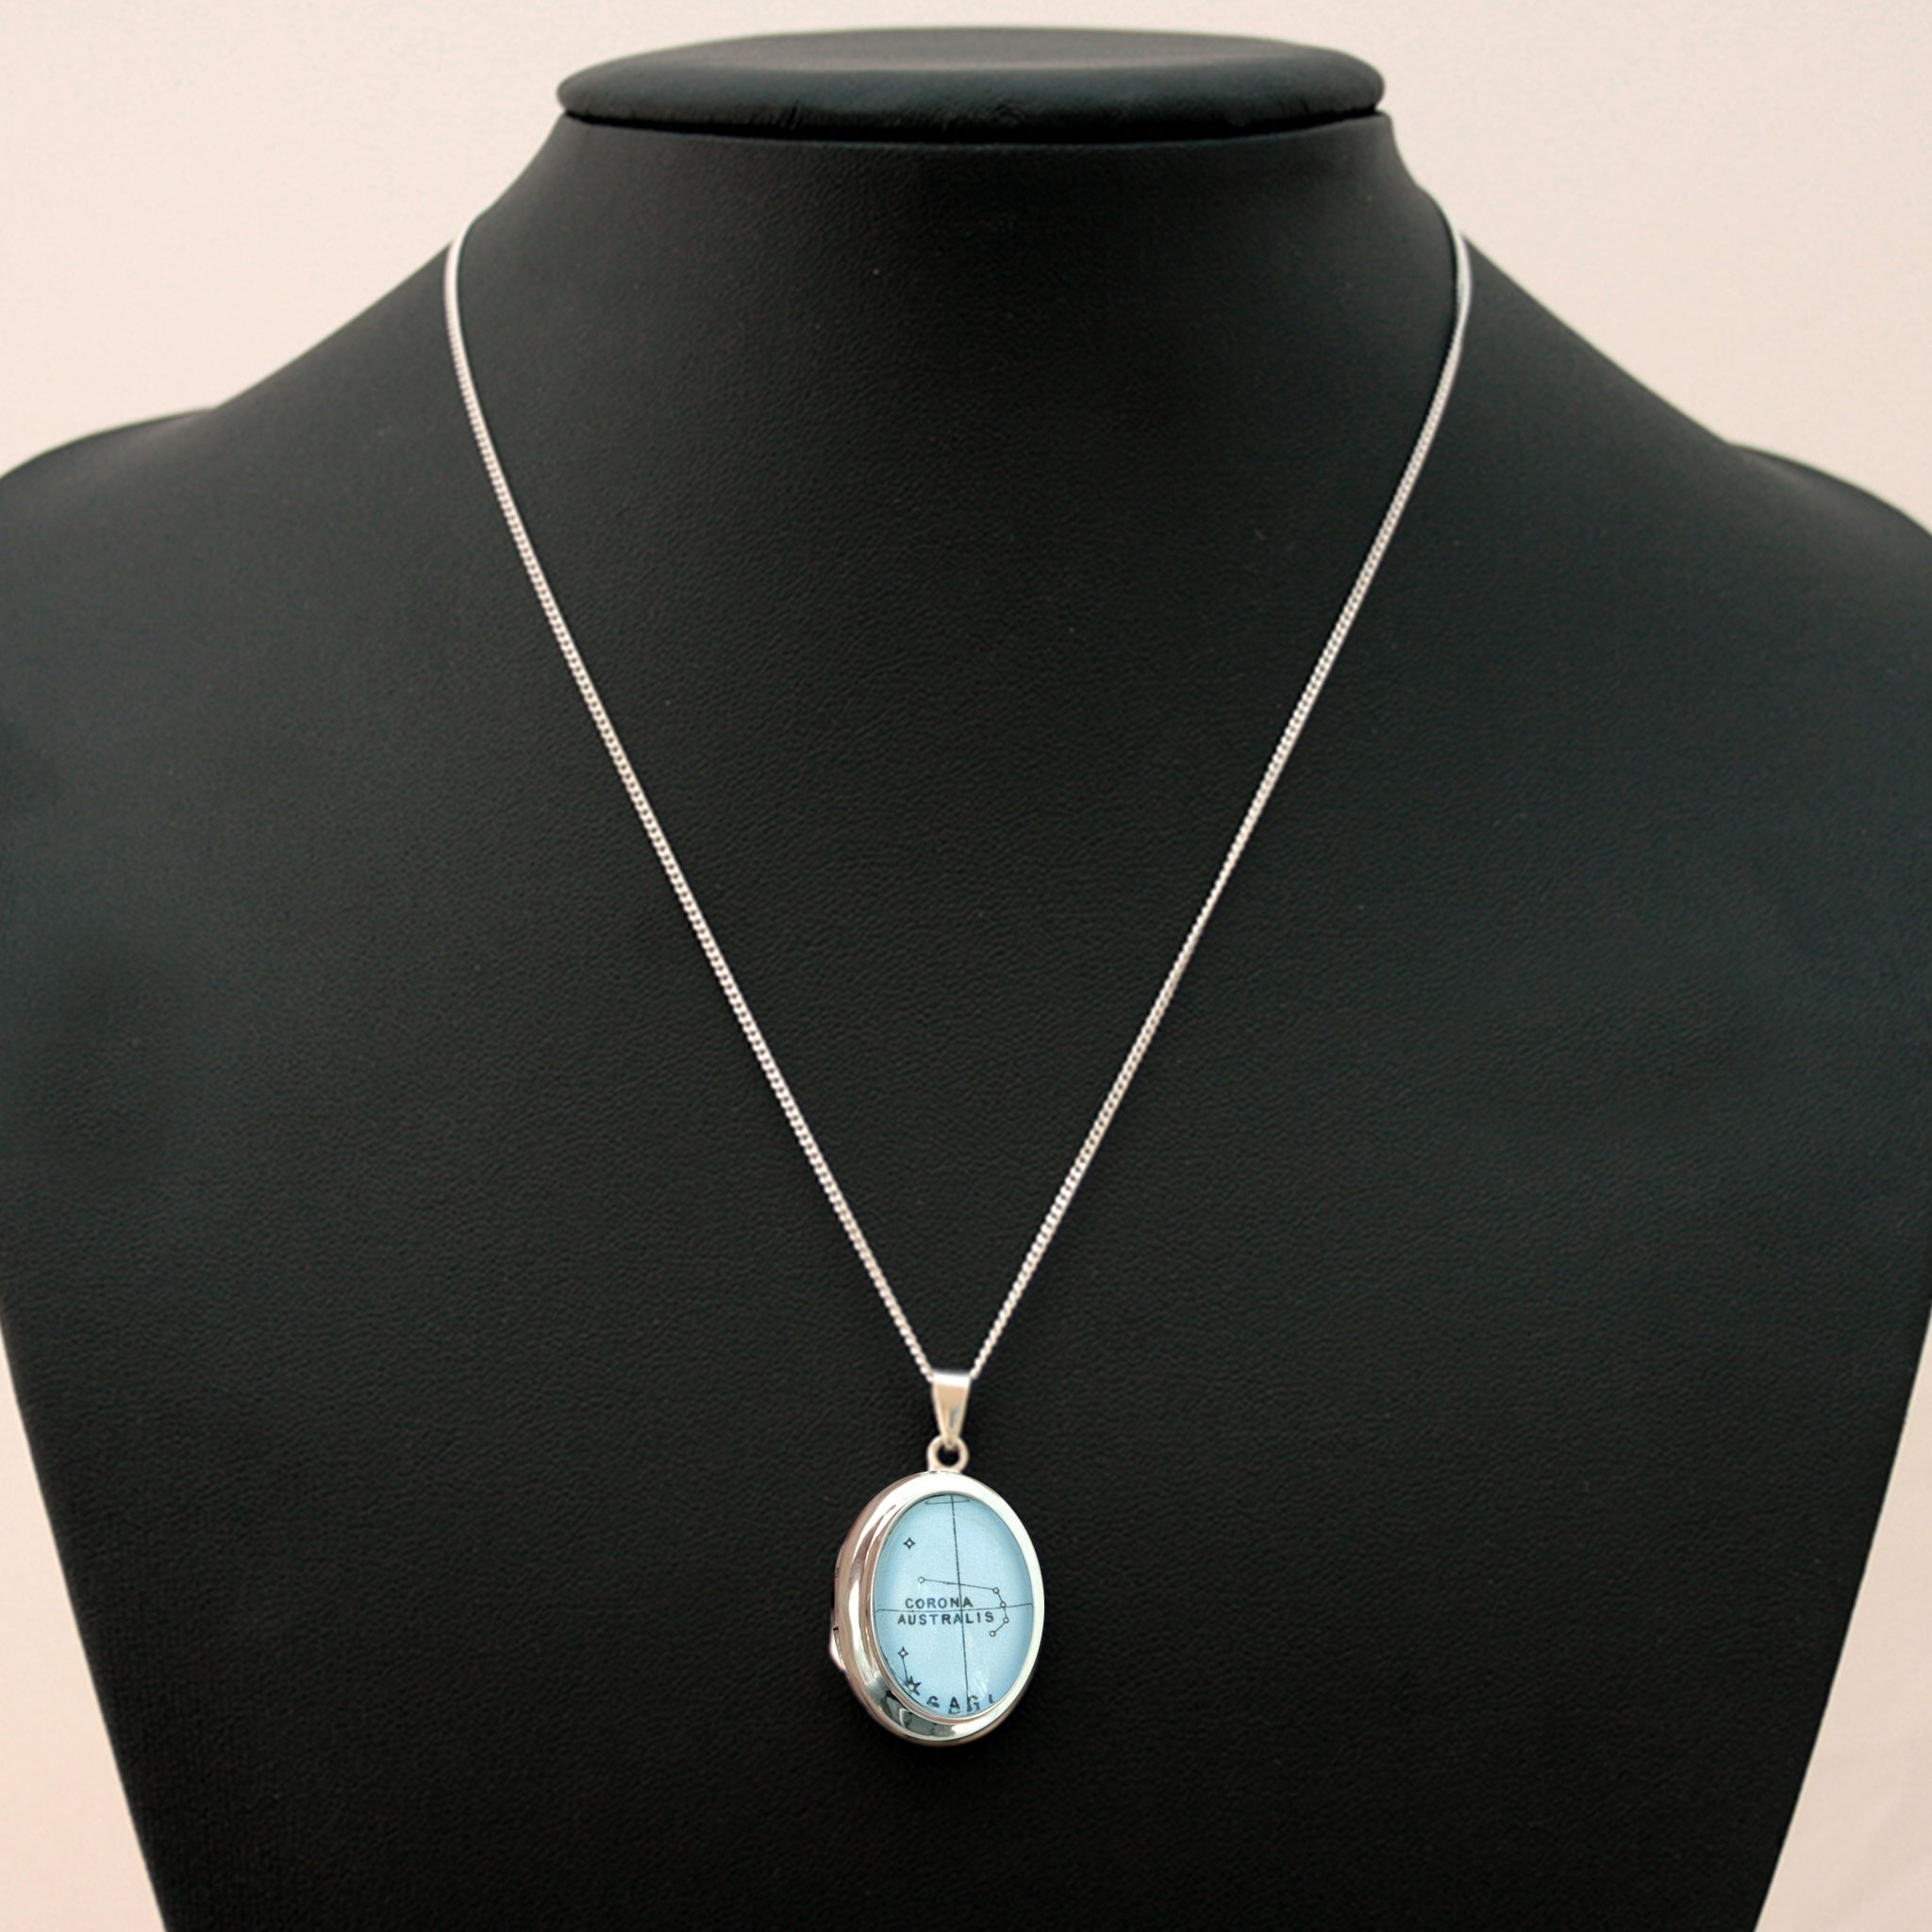 Sterling Silver locket necklace featuring map of Santa Cruz on bust